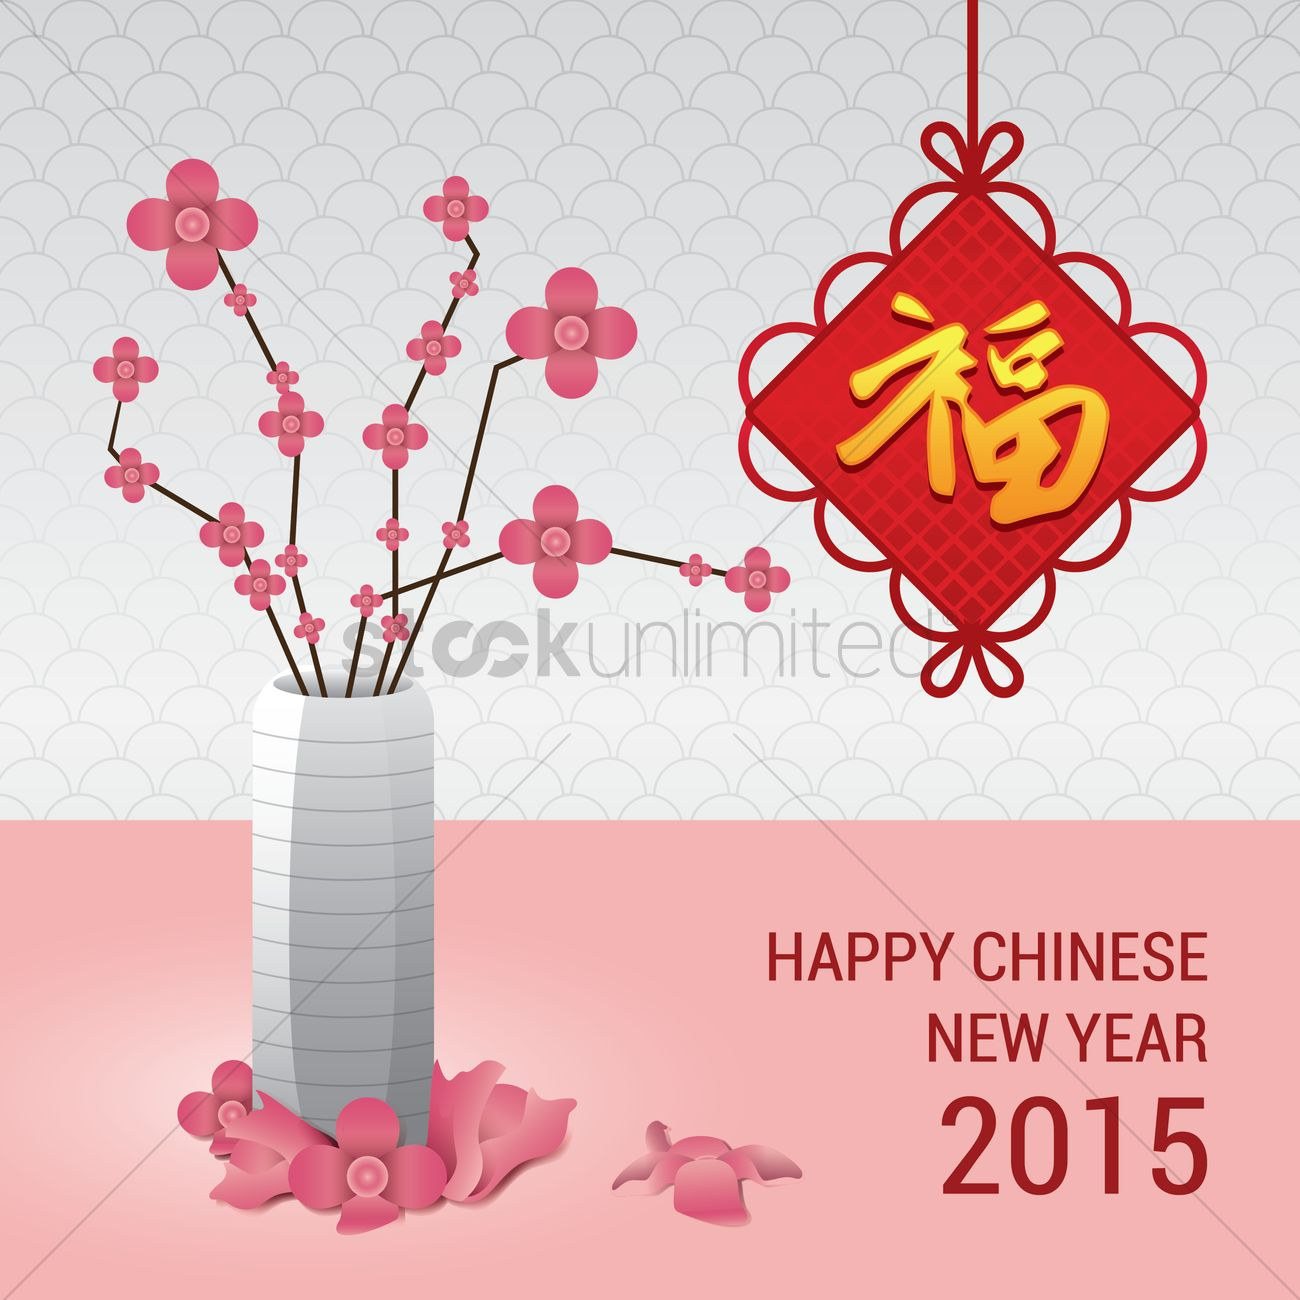 Chinese new year greeting vector image 1350115 stockunlimited chinese new year greeting vector graphic m4hsunfo